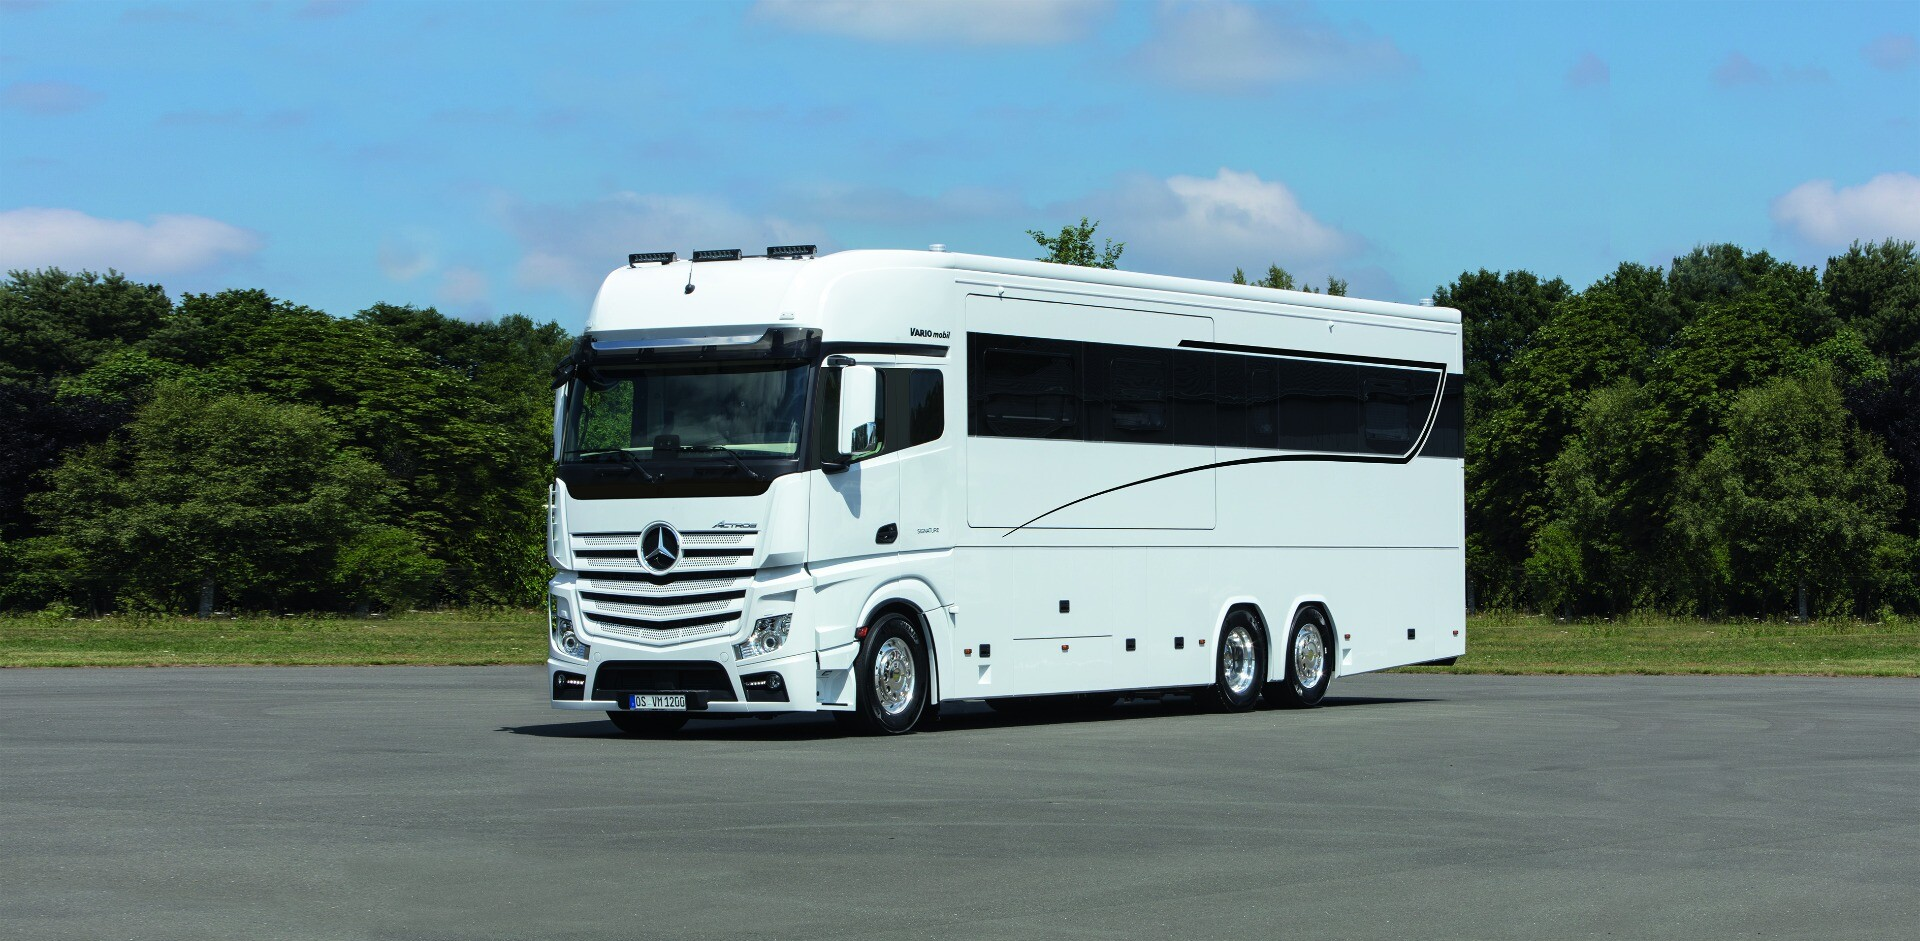 The Signature 1200 is based on the 26-tonne Mercedes-Benz Actros 2553